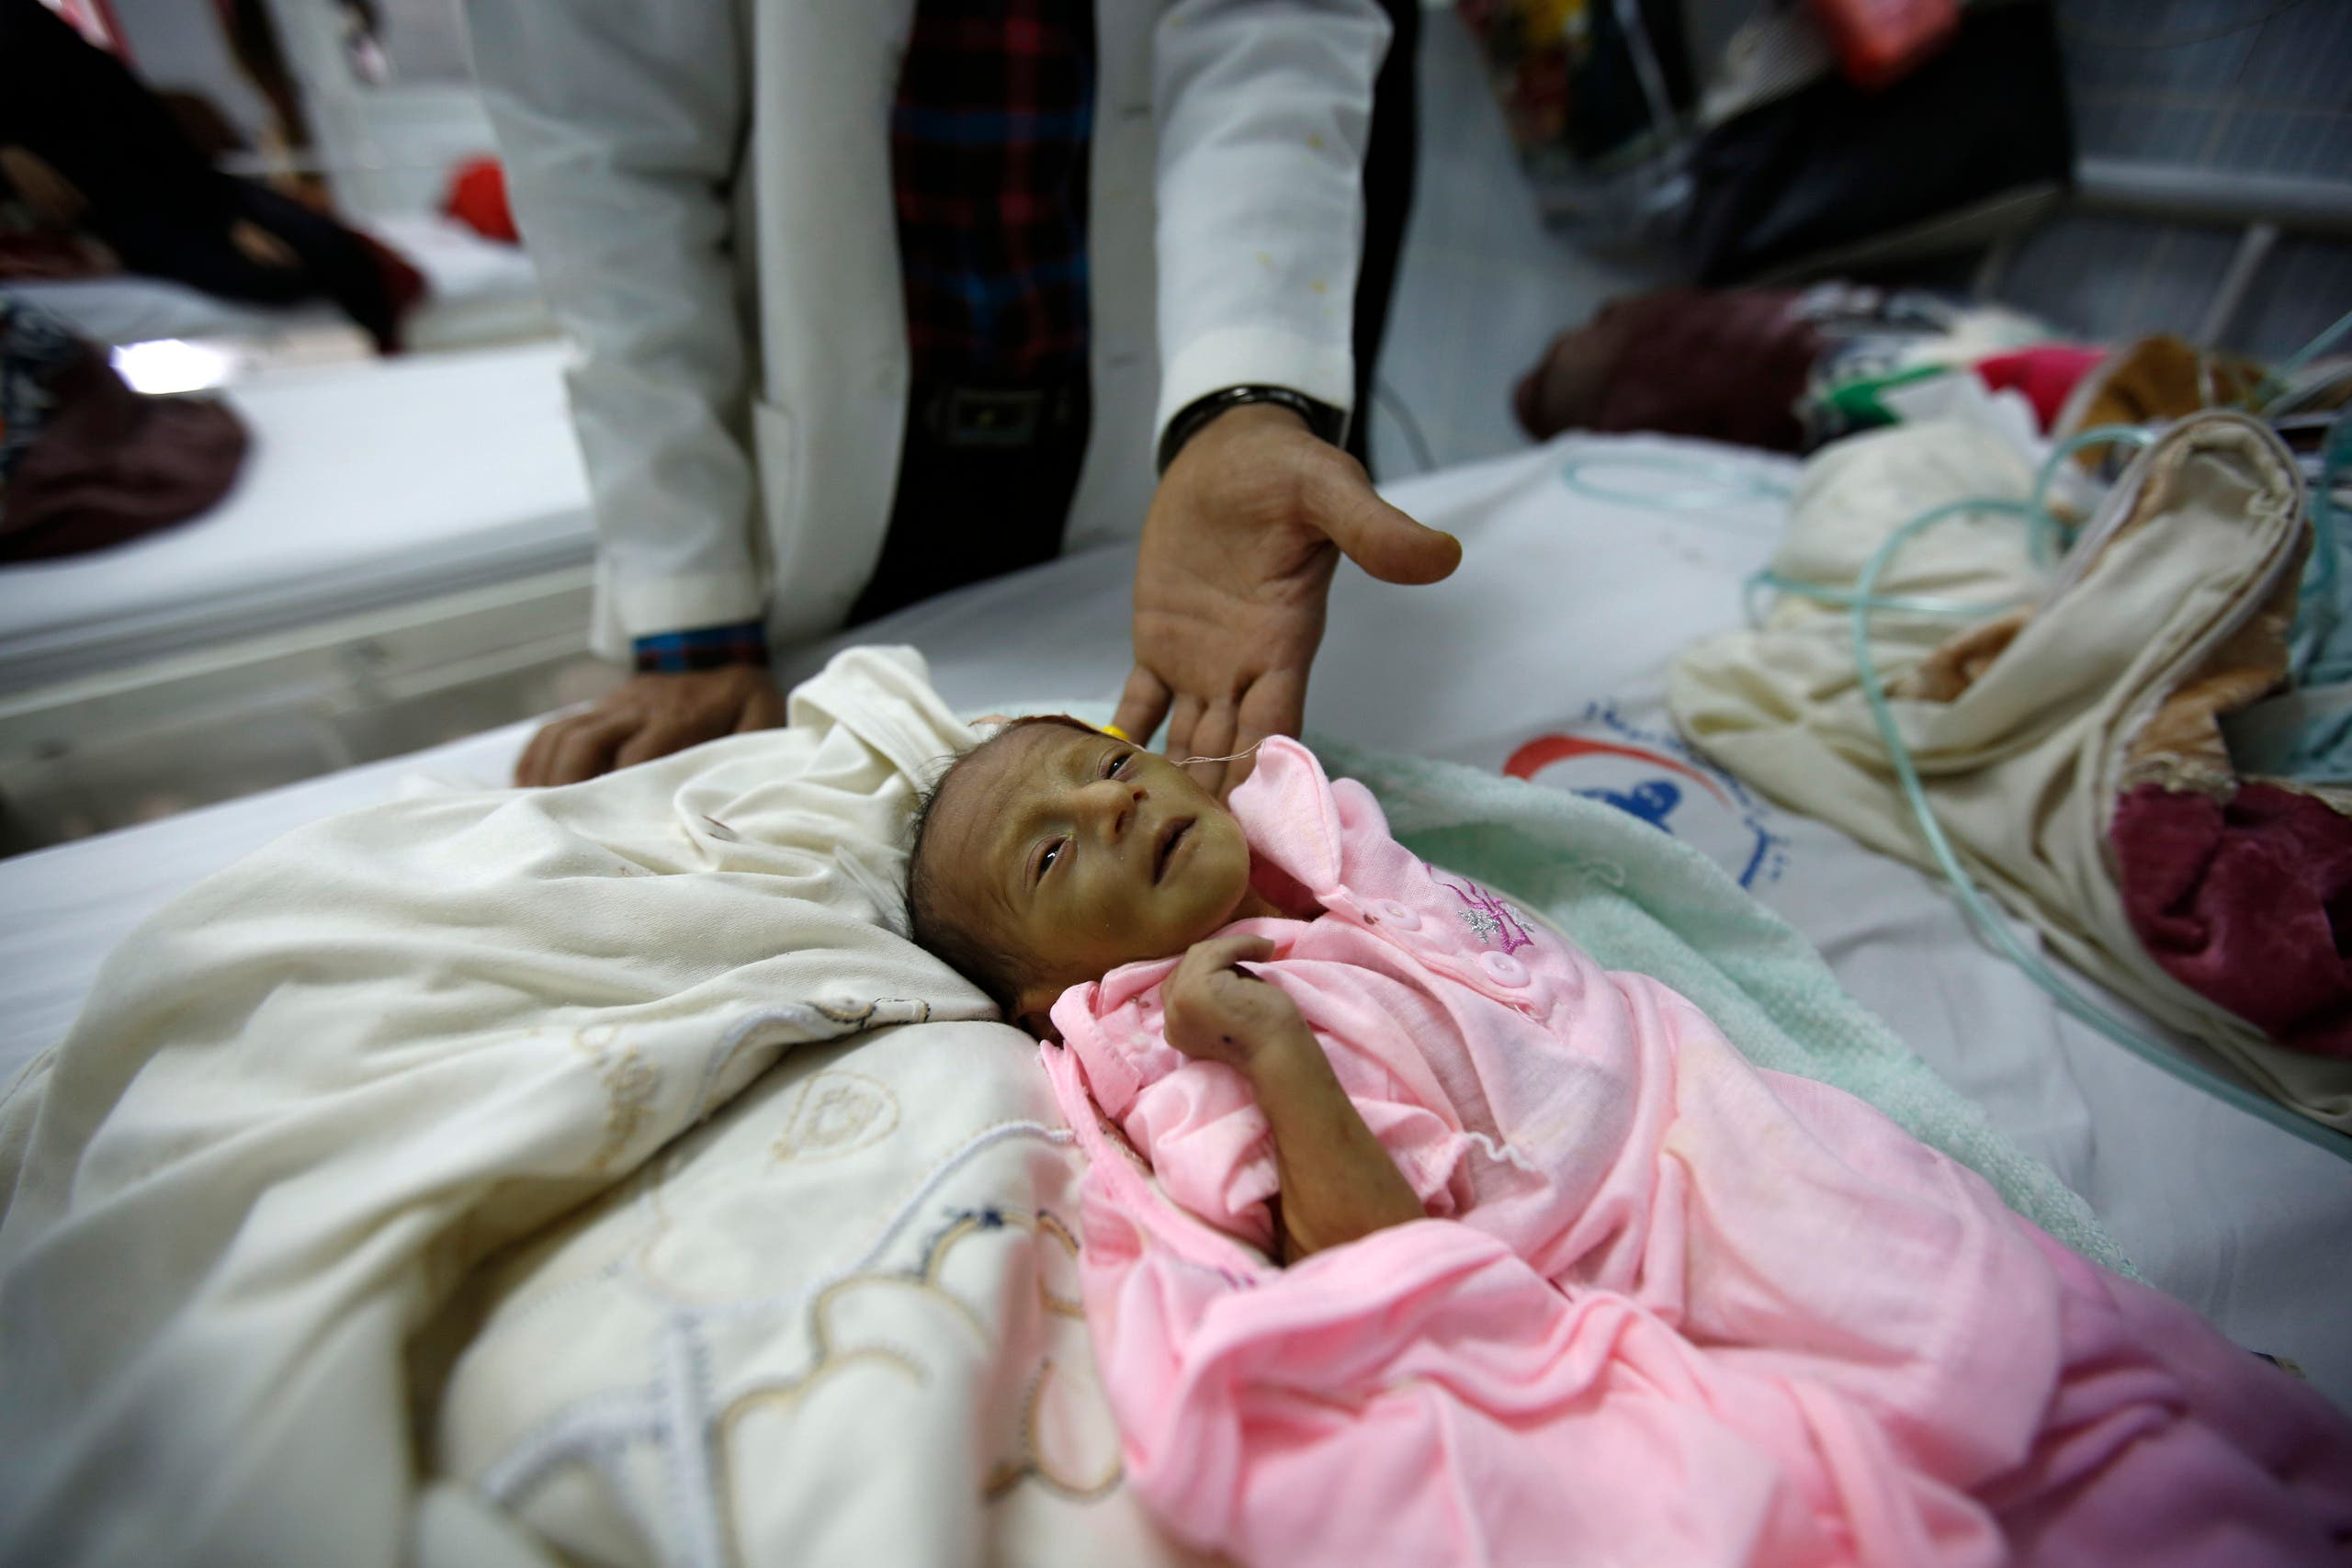 In this Sunday, Jan. 24, 2016 photo, a doctor touches a malnourished child at a therapeutic feeding center in a hospital in Sanaa, Yemen. (AP)